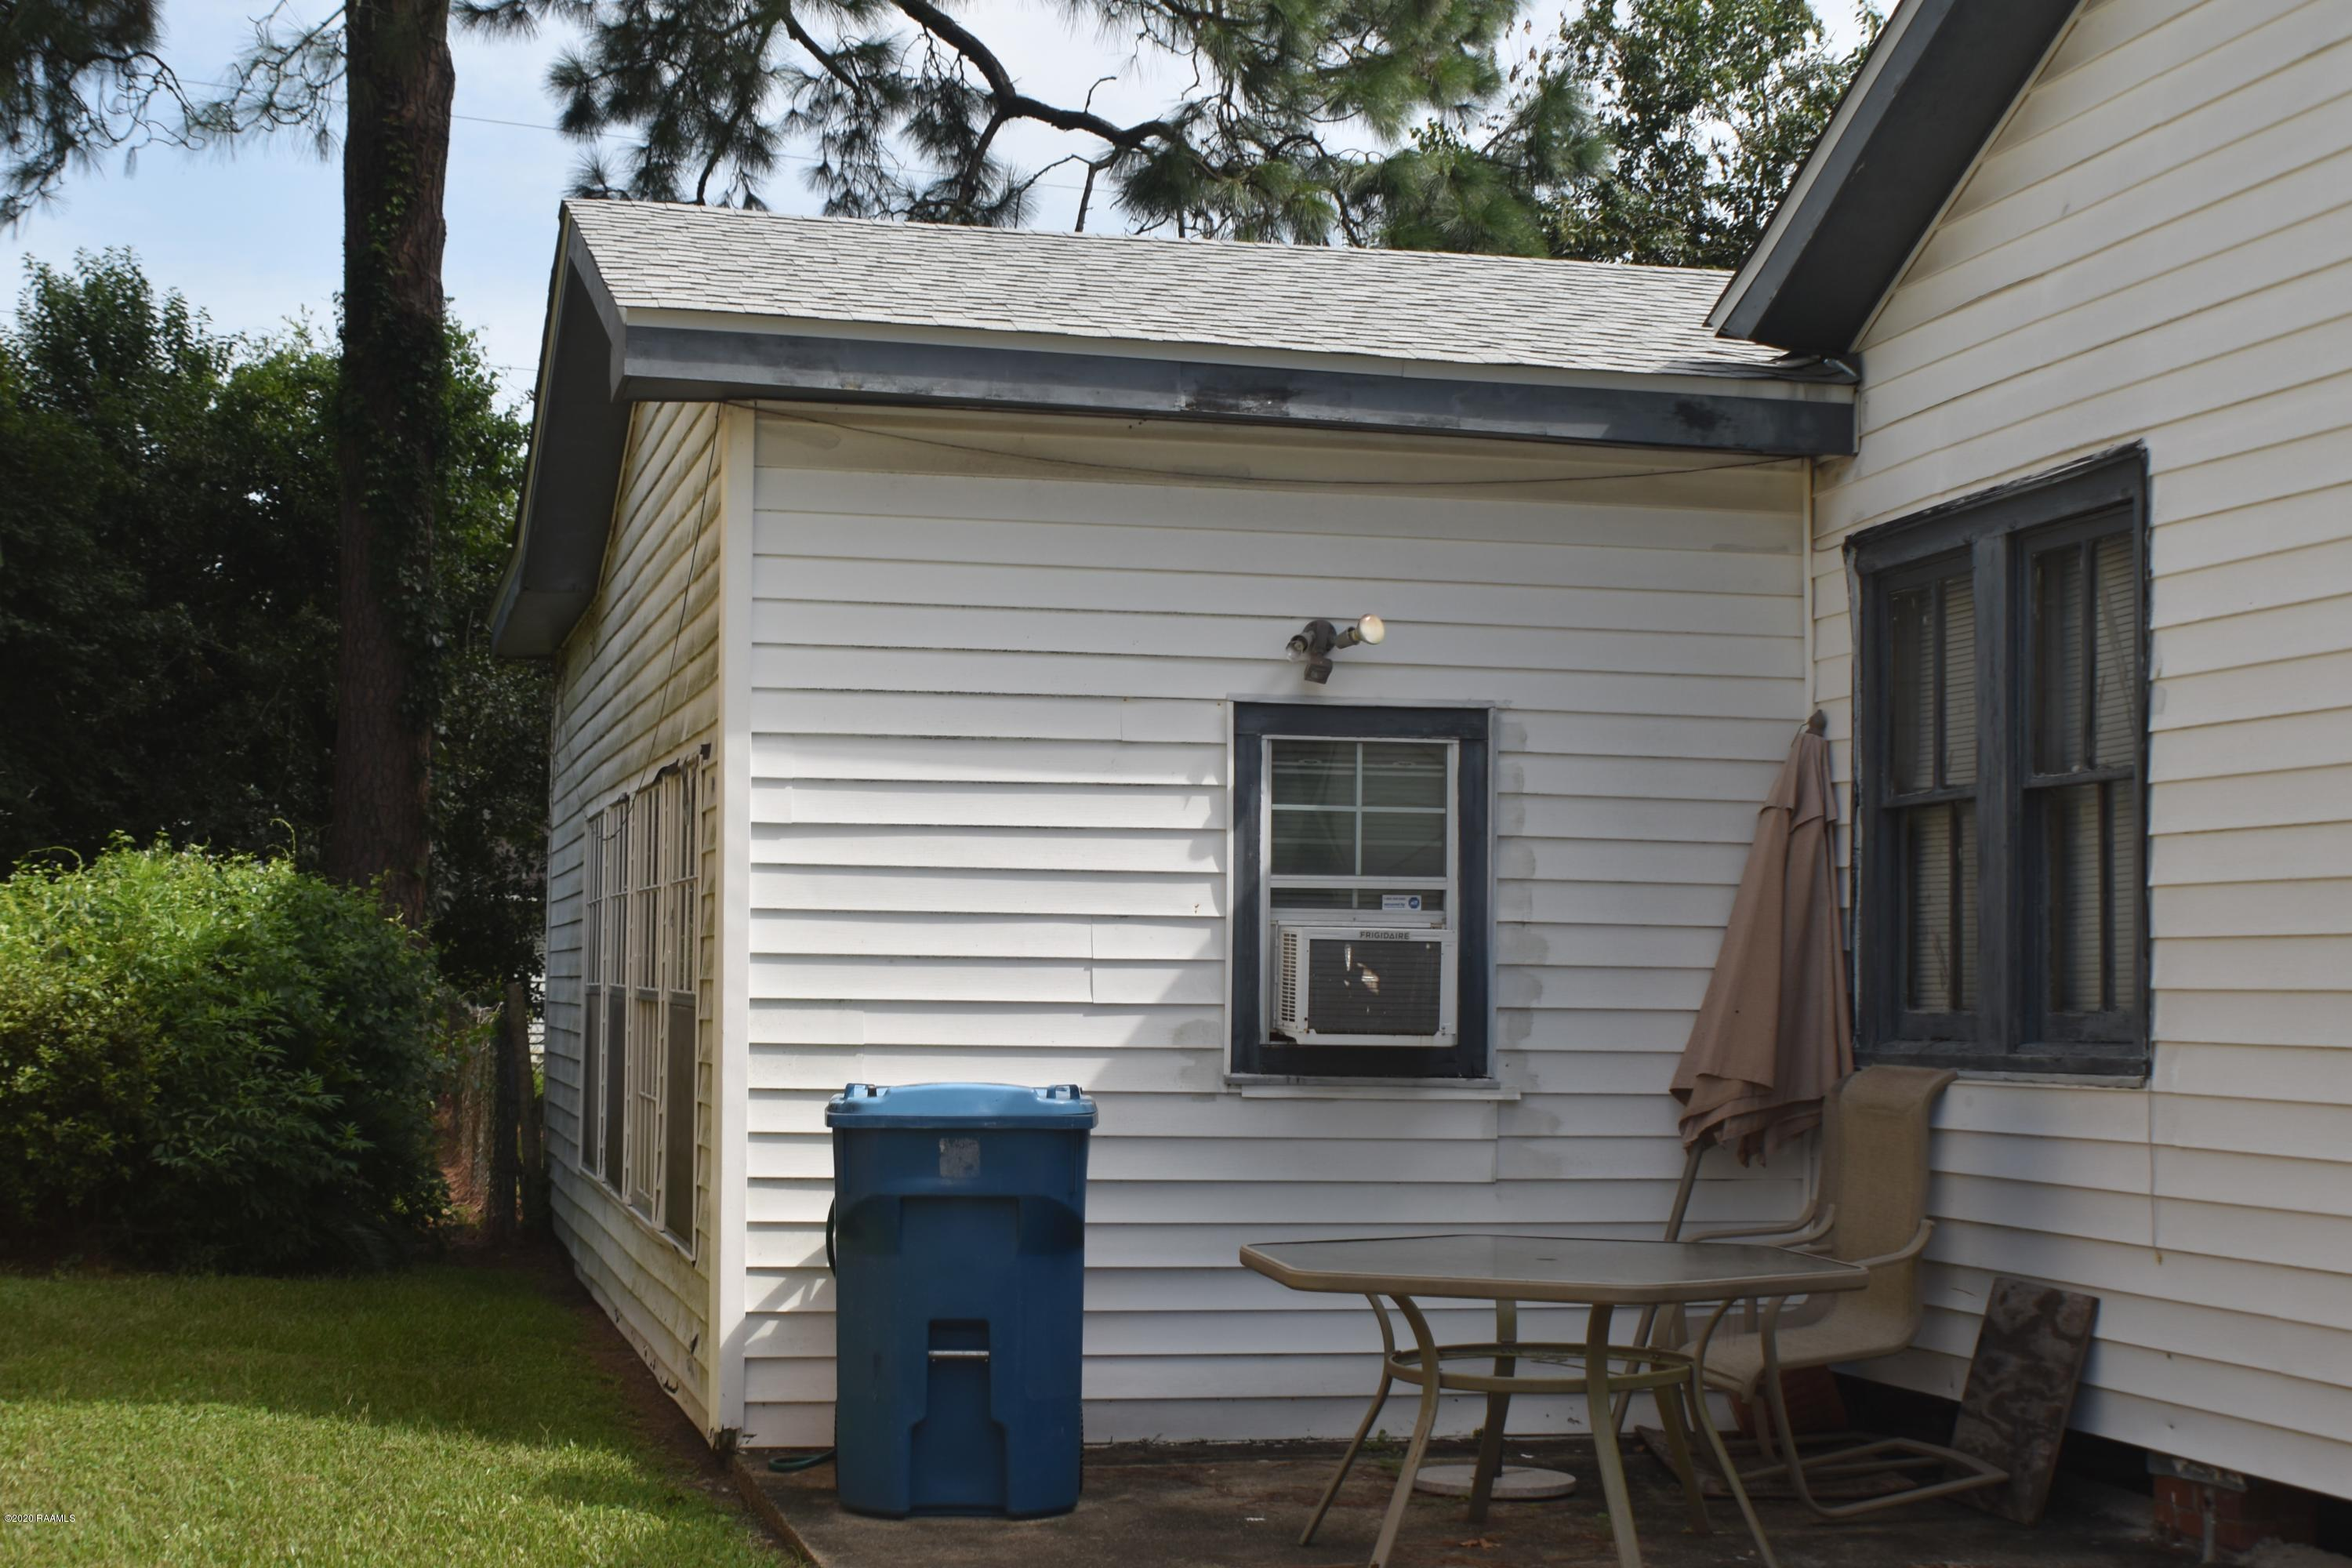 217 Goldman Street, Lafayette, LA 70501 Photo #4